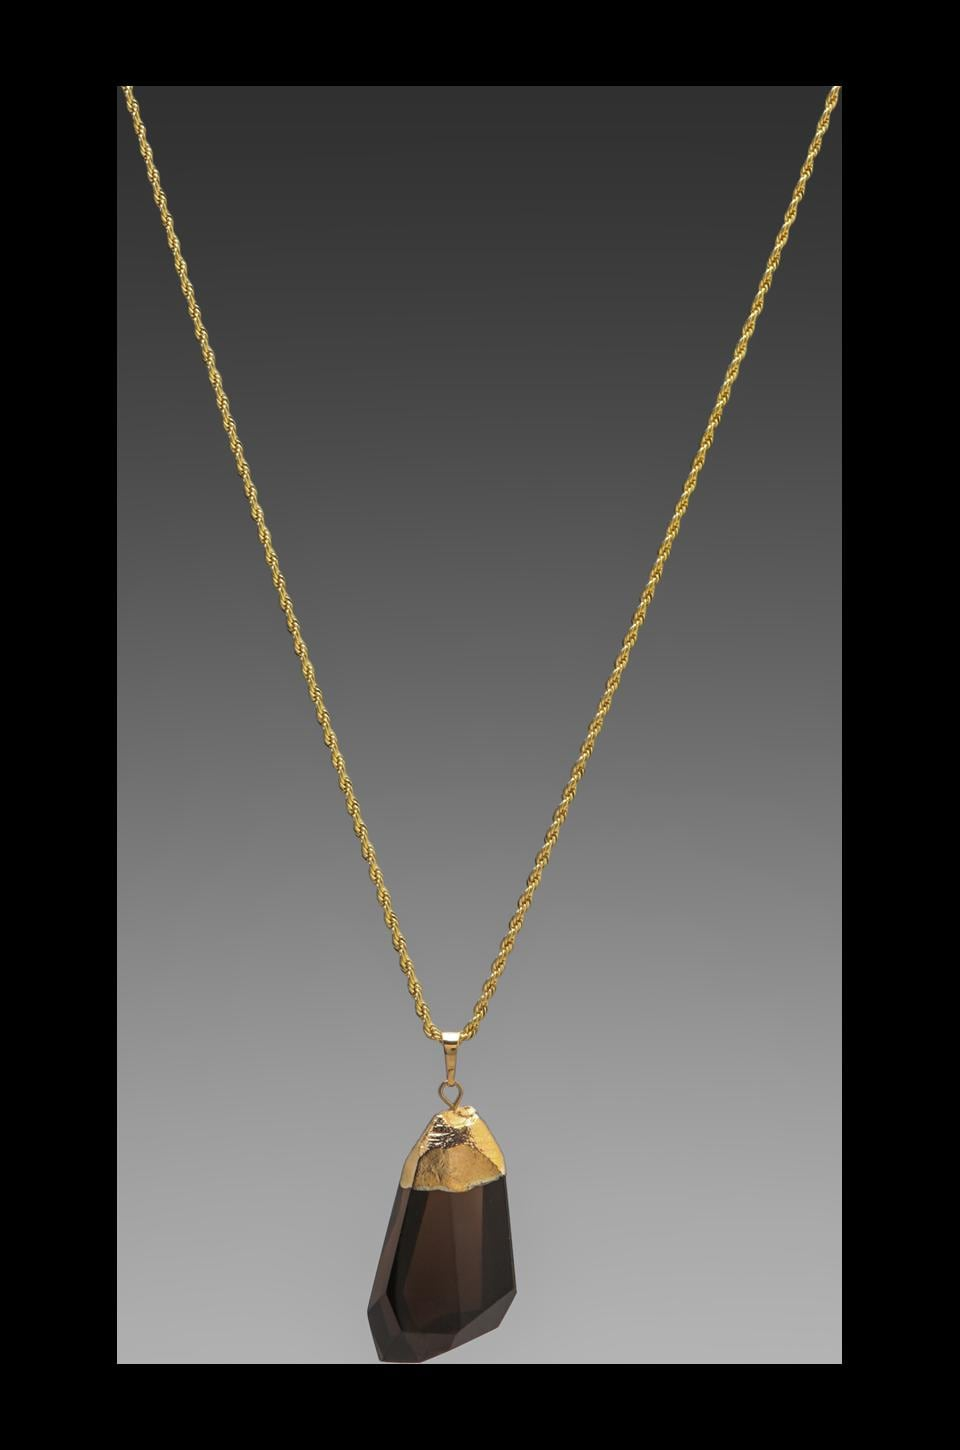 Kenneth Jay Lane Gold Chain Foil Top and Stone Necklace in Black